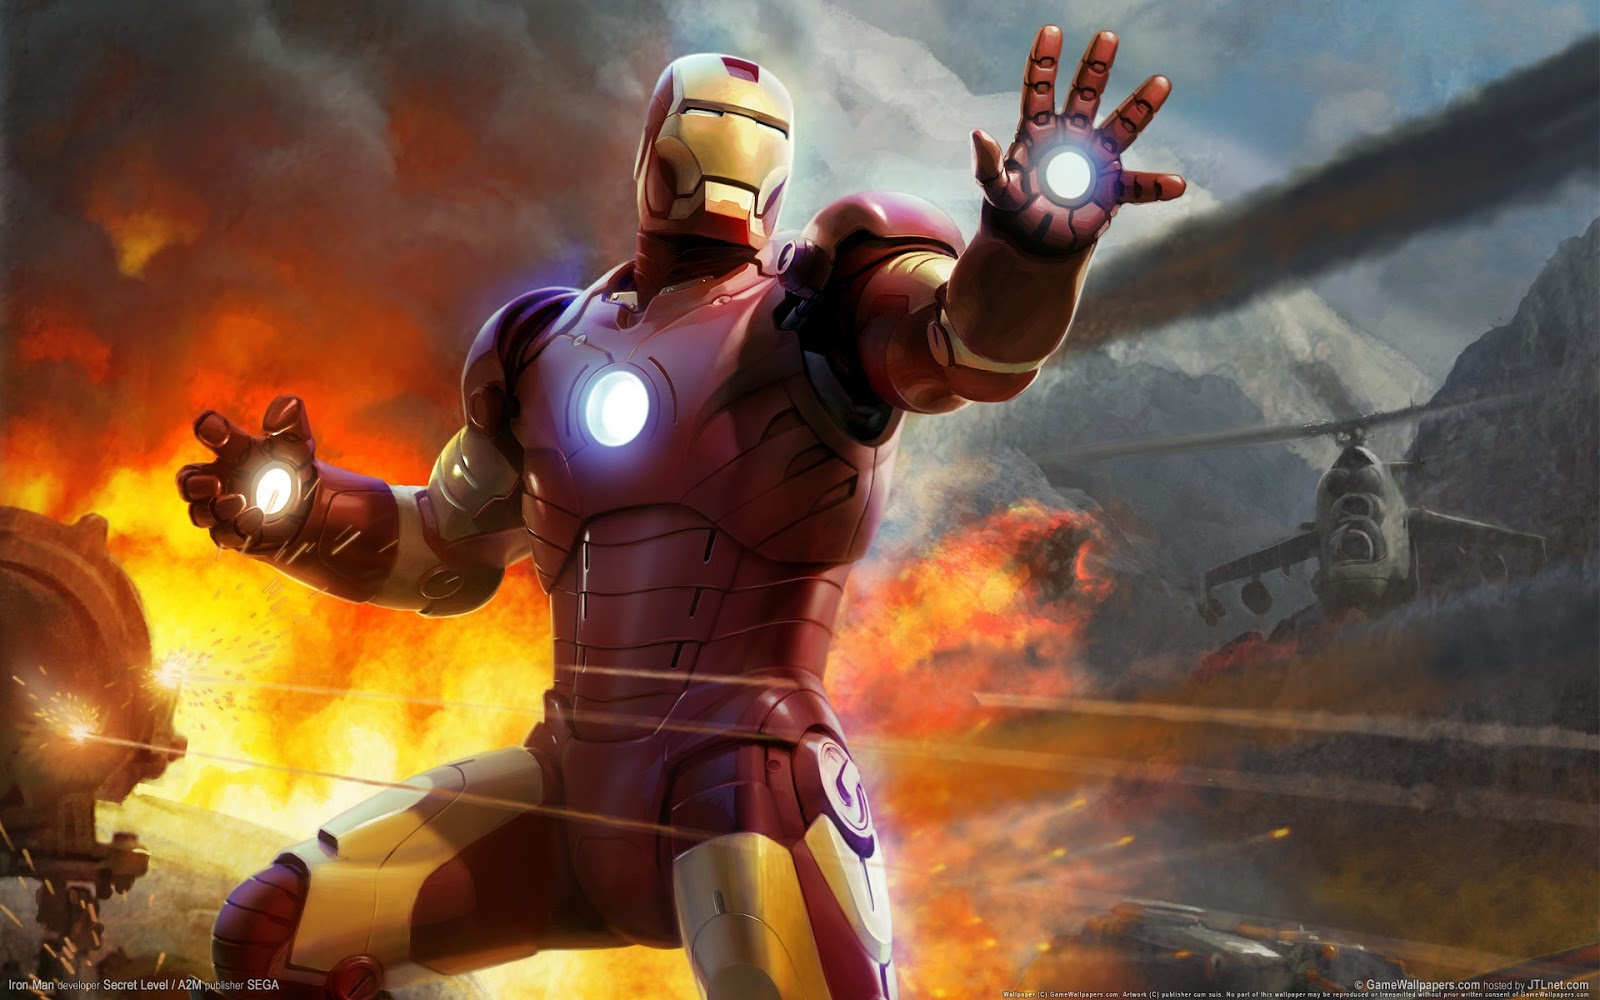 http://3.bp.blogspot.com/-UCoElH3pH3c/UK_xjQCGD1I/AAAAAAAAALc/vTJDRozhLYA/s1600/iron_man_games_wallpaper-wide.jpg